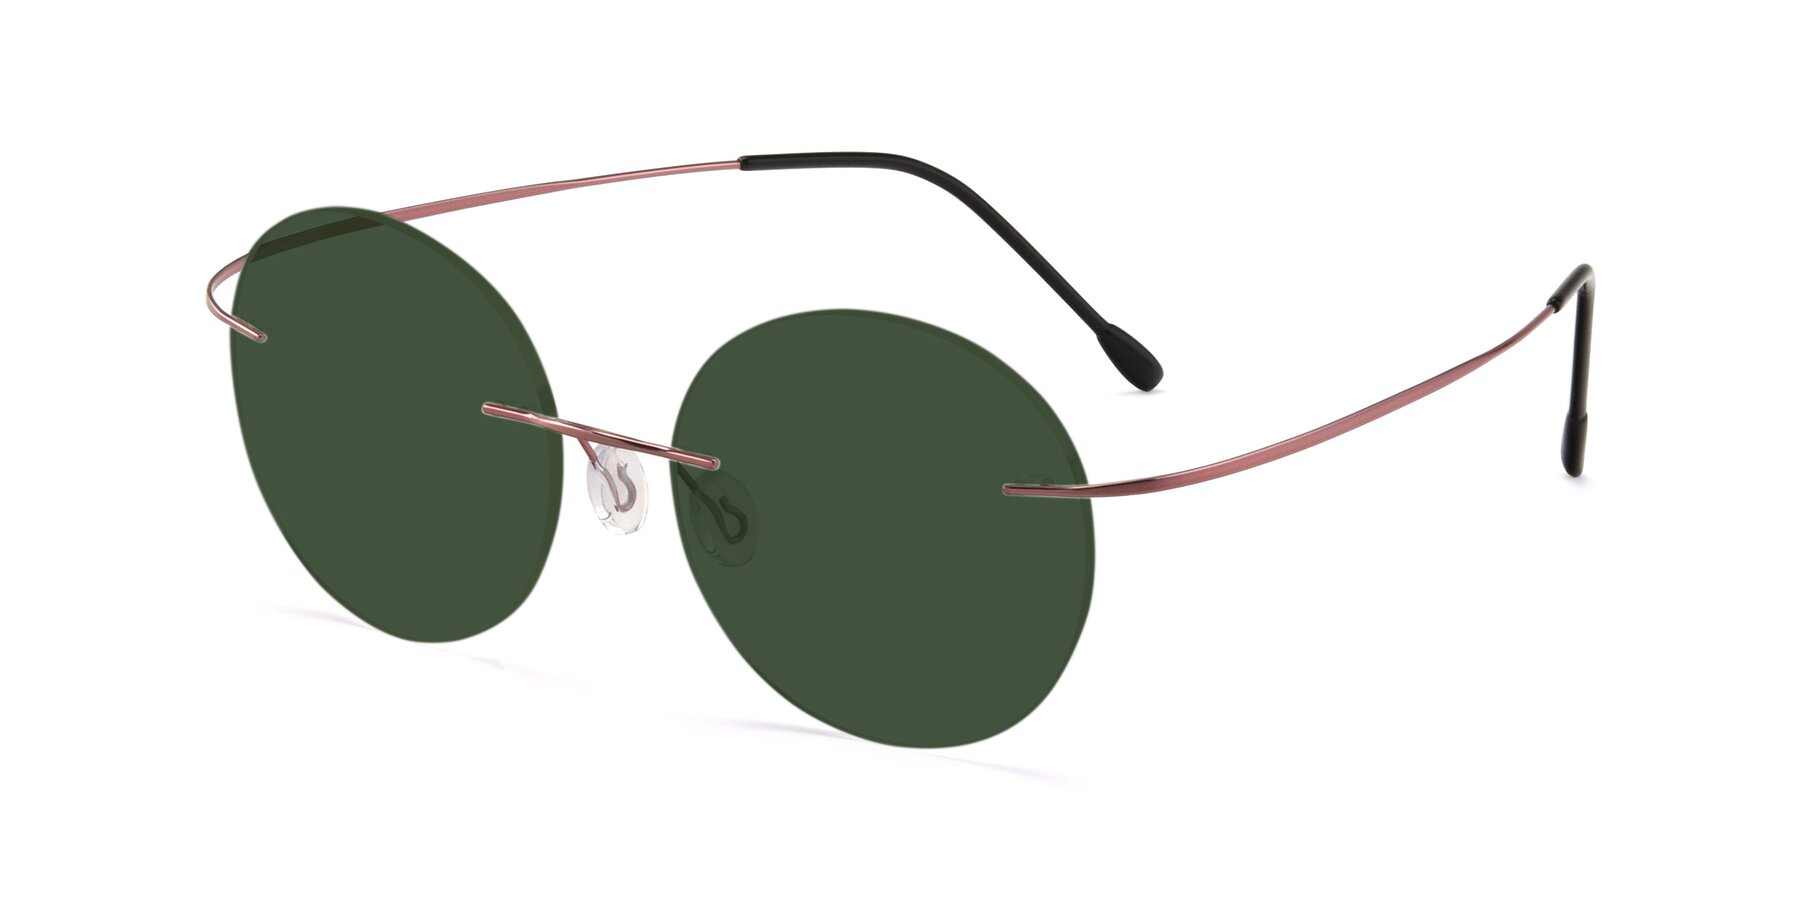 Angle of Leon in Light Pink with Green Tinted Lenses